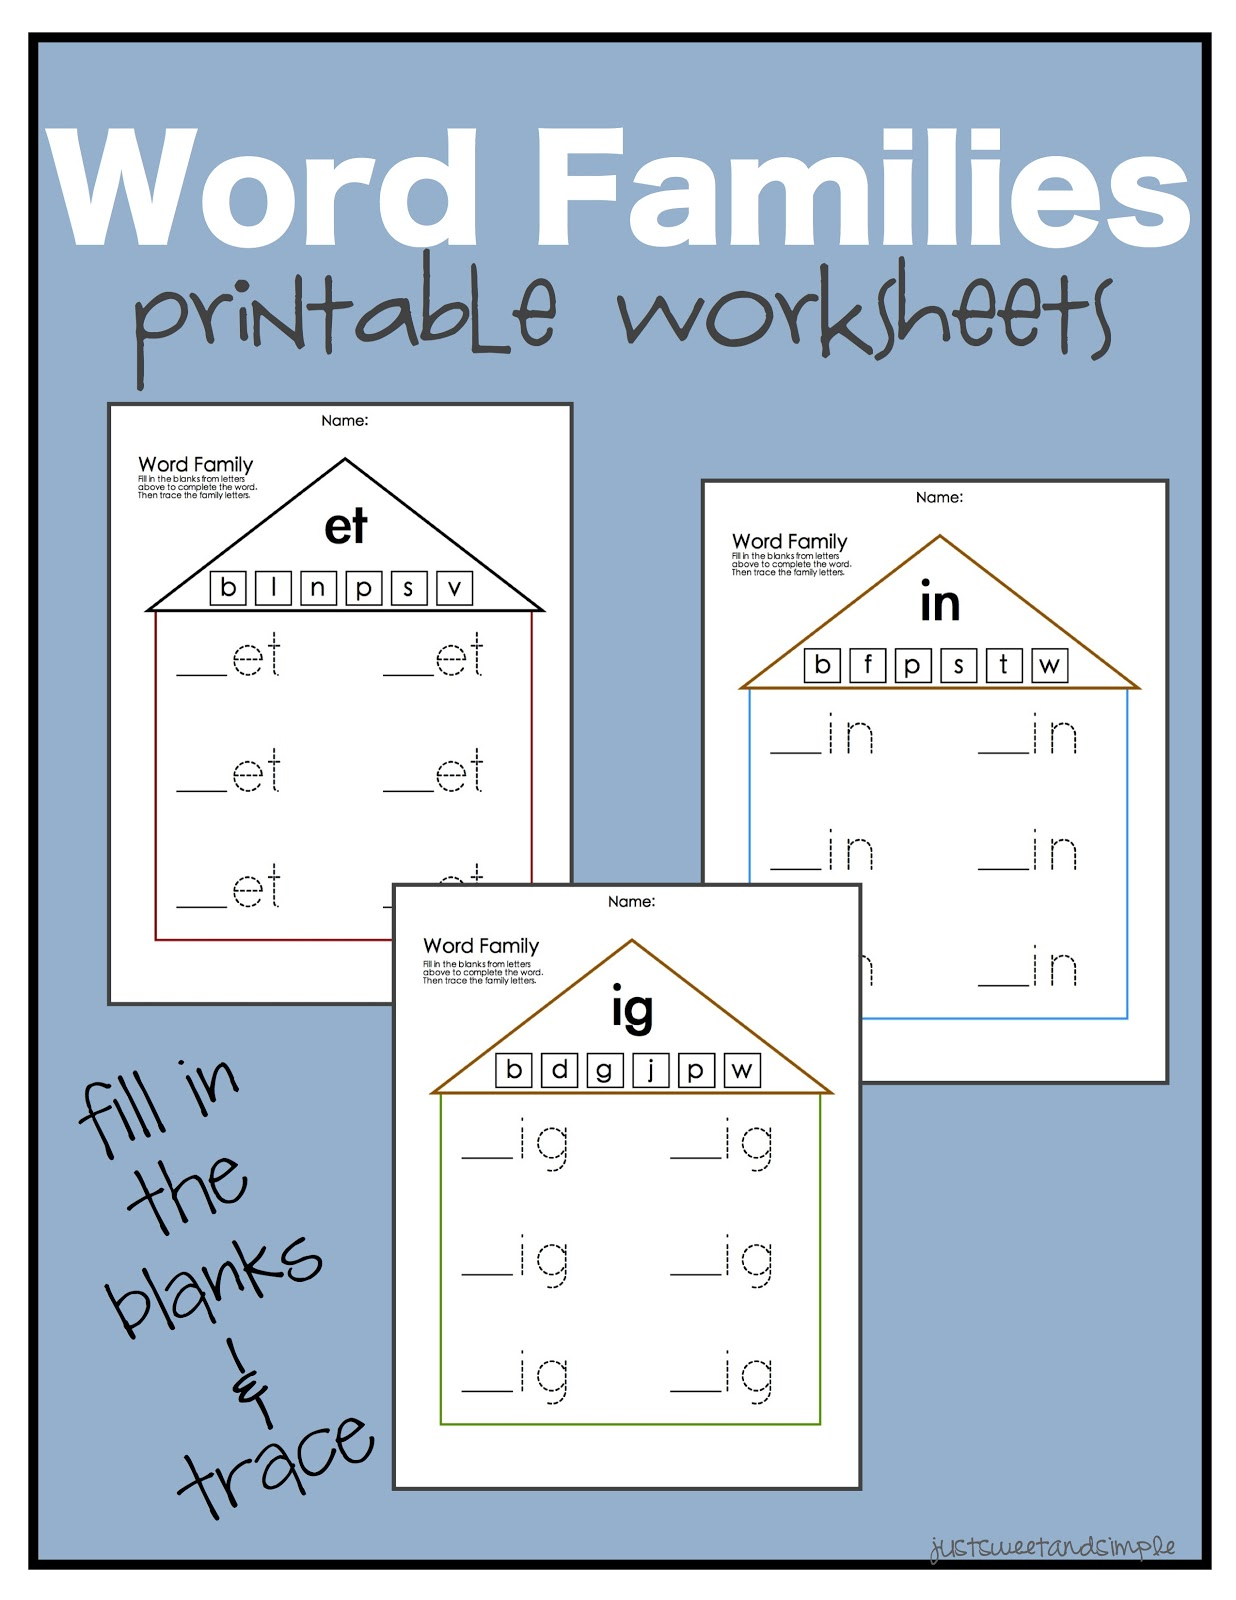 Worksheets Word Family Worksheets Free just sweet and simple preschool practice word family worksheets worksheets